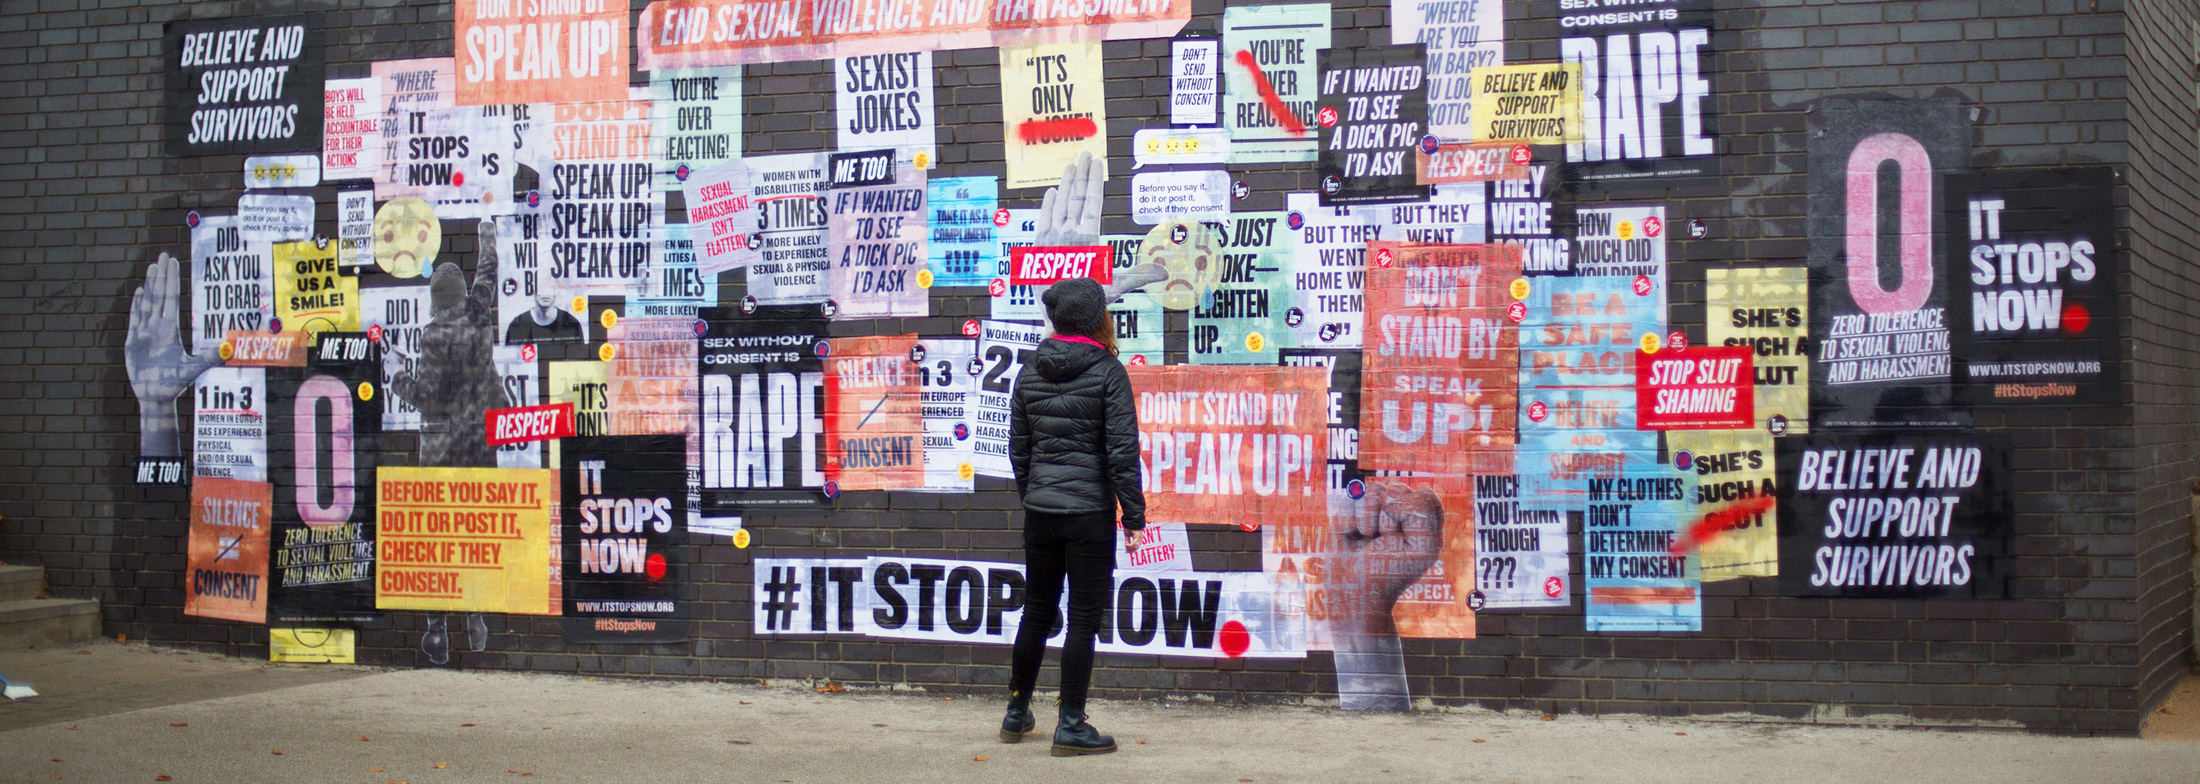 It Stops Now Campaign Video and Photo Production Design for Social Good